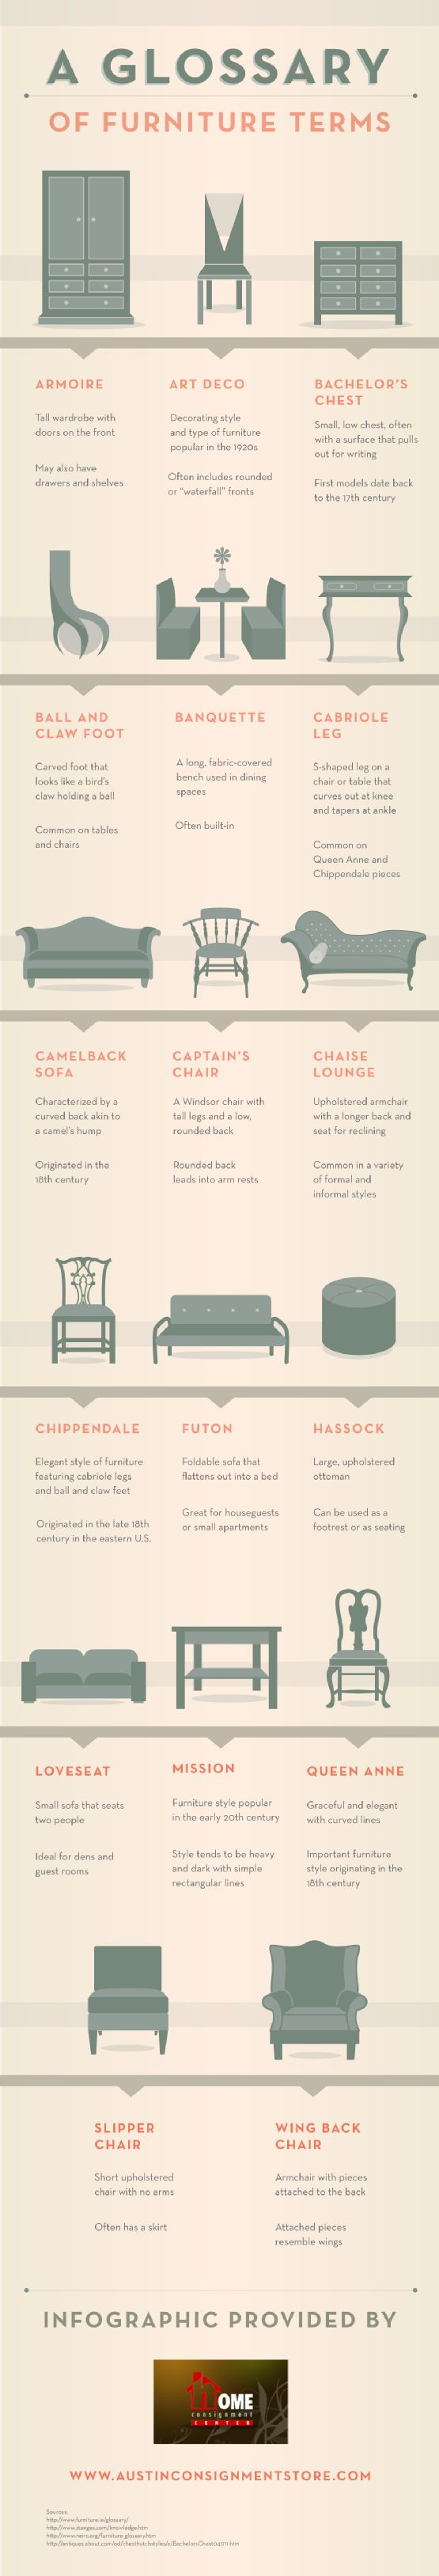 A camelback sofa has a curved back that is reminiscent of a camel's hump. This popular  furniture style has been around since the 18th century and is still popular today. Learn more about furniture in this infographic from a consignment store in Austin.